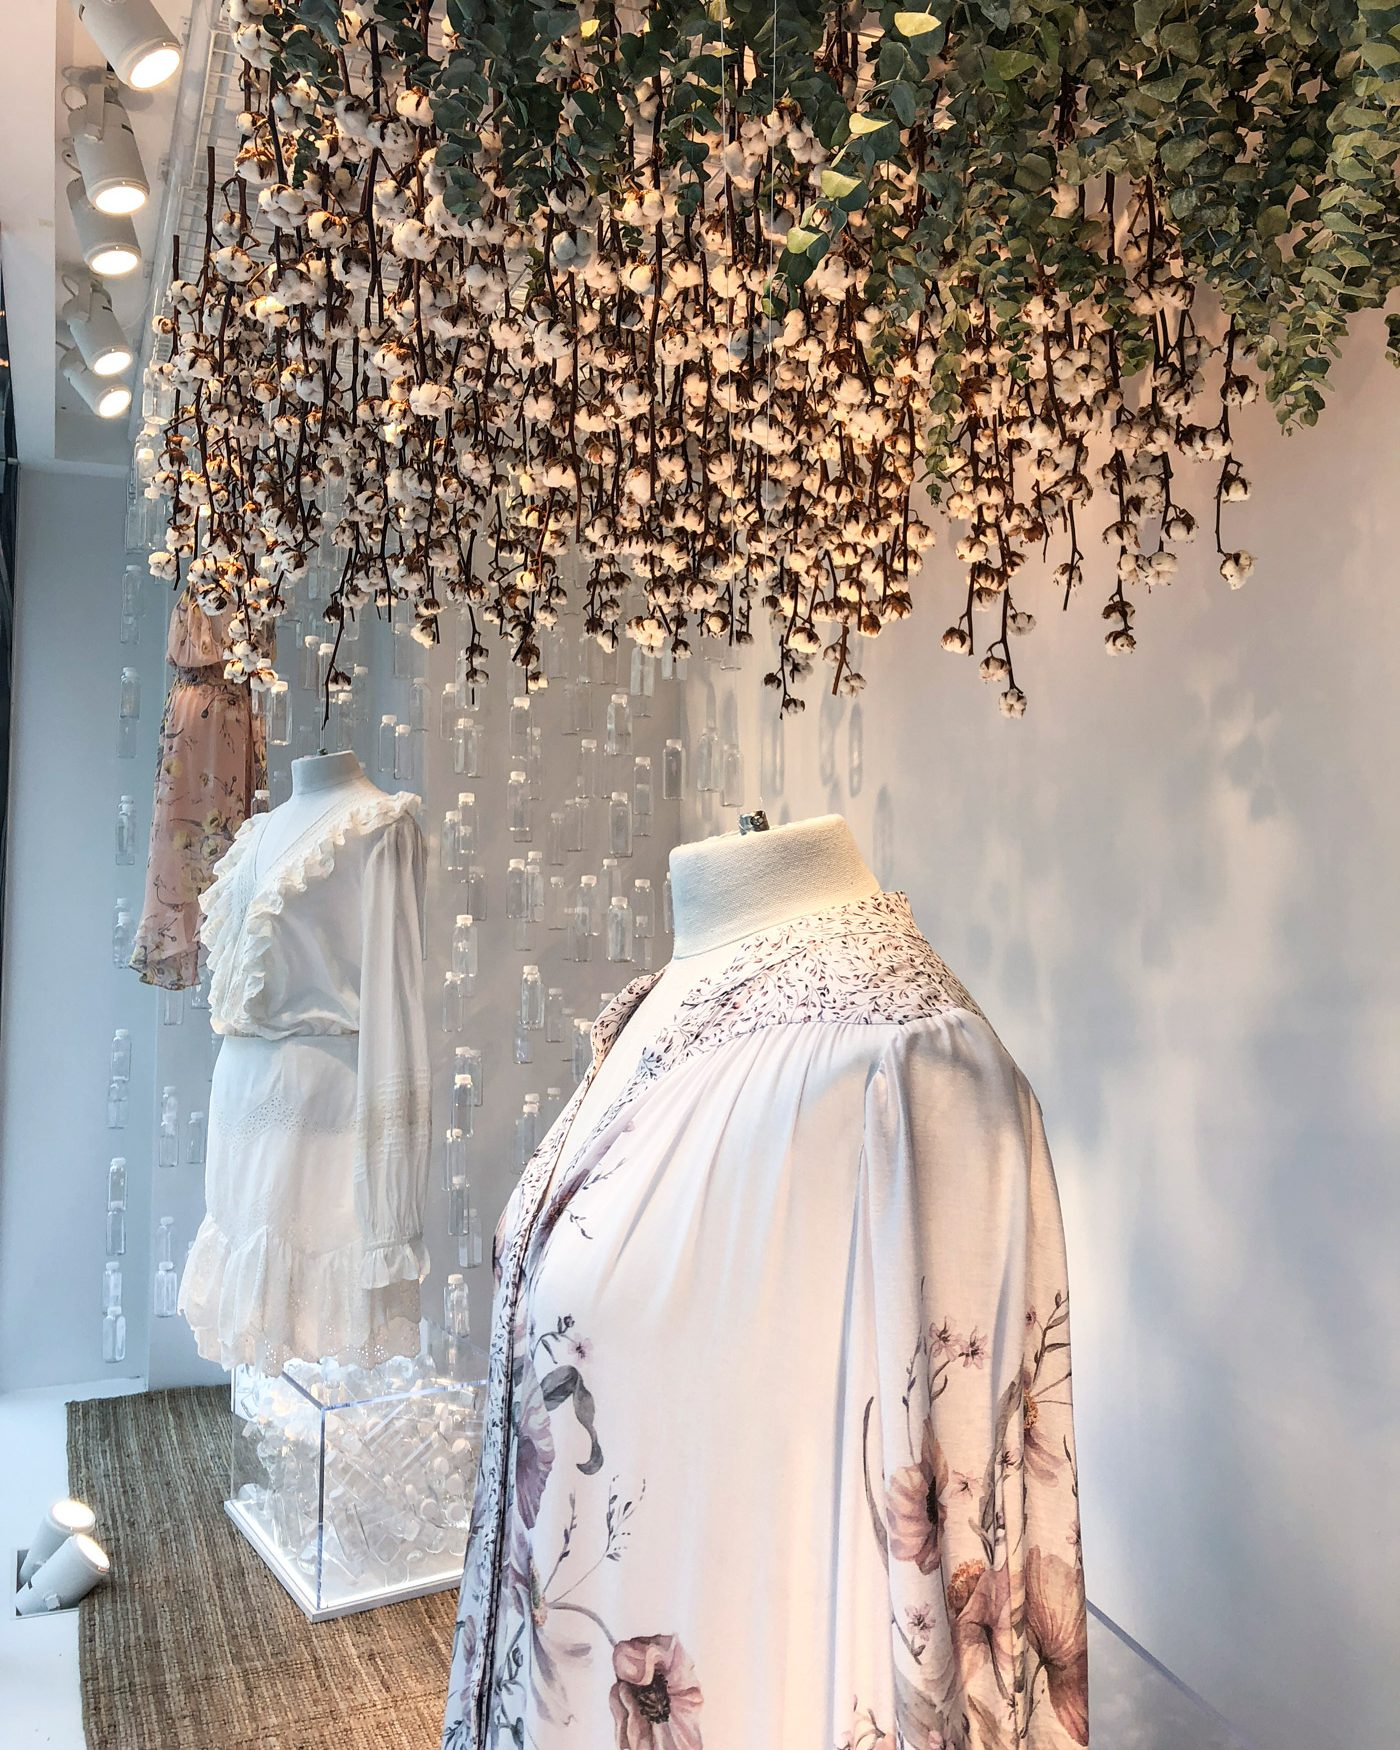 H&M: Conscious Collection | MASSIVart - Retail Activation